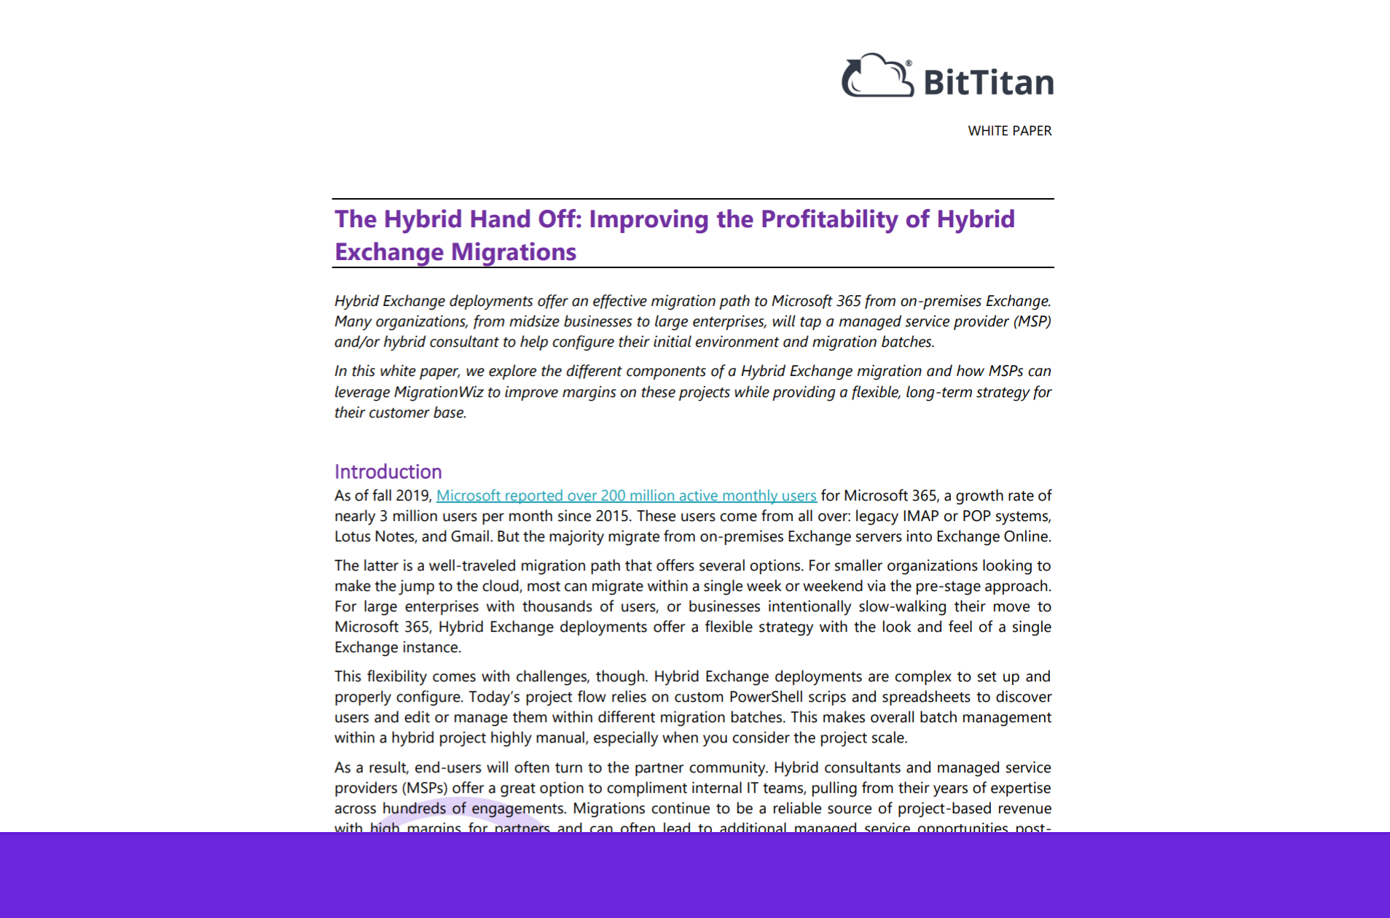 Improving Partner Profitability on Hybrid Exchange Migrations